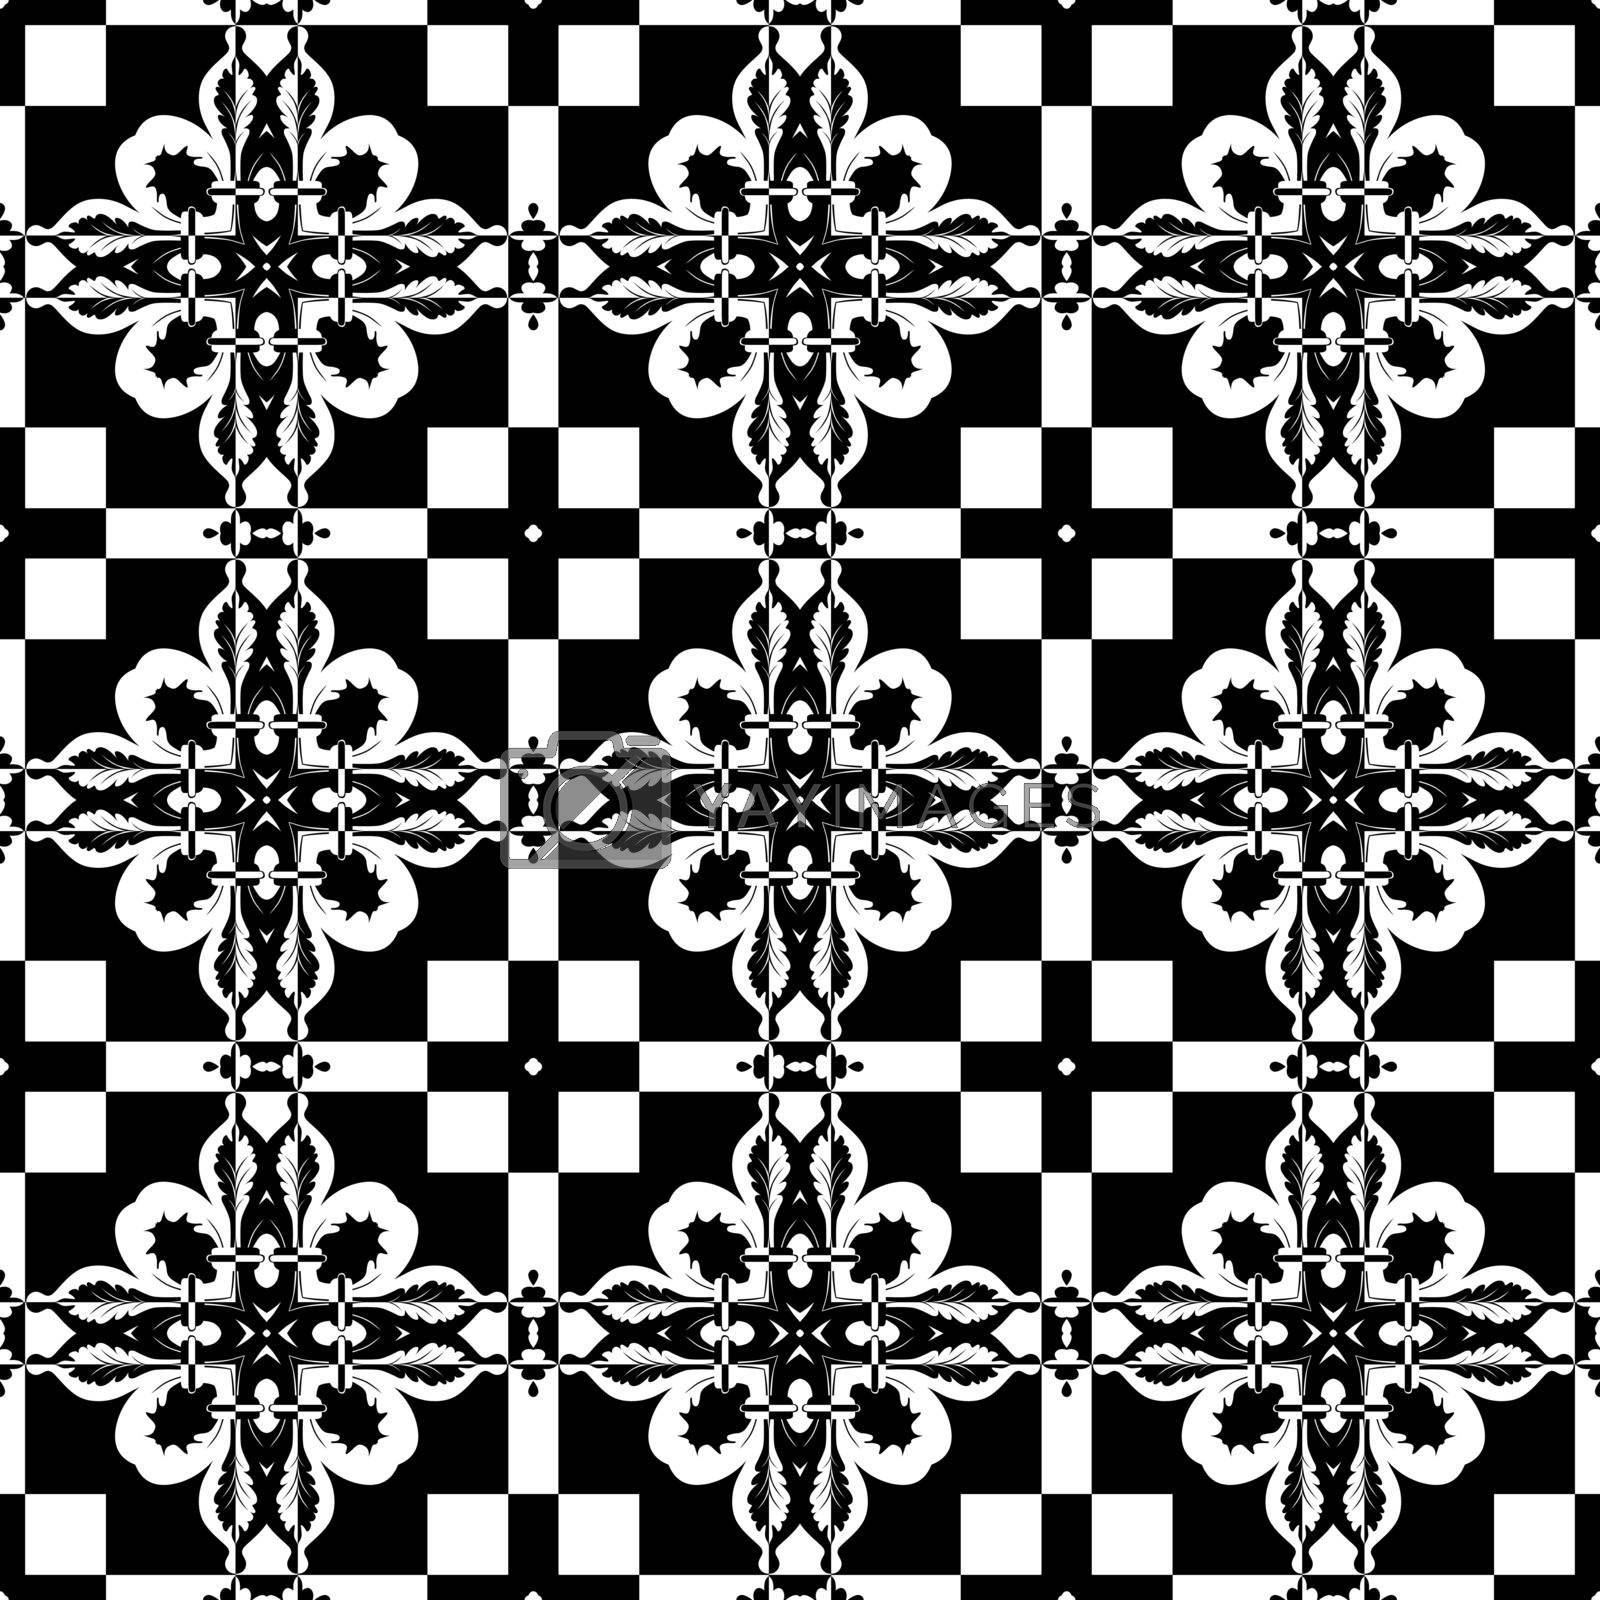 Seamless pattern in black and white made of floral elements